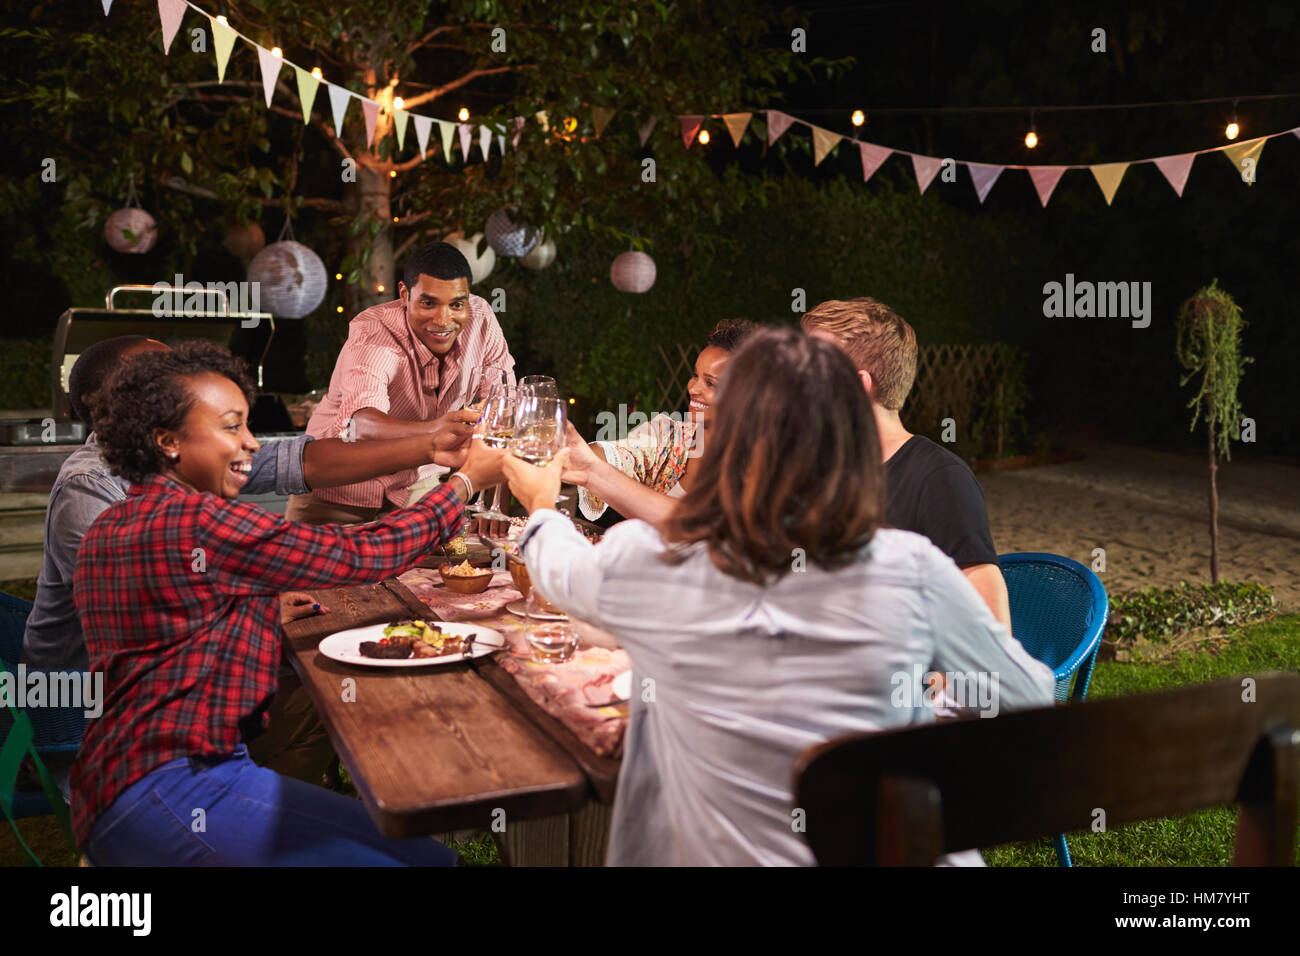 Friends and family making a toast at dinner party in garden - Stock Image